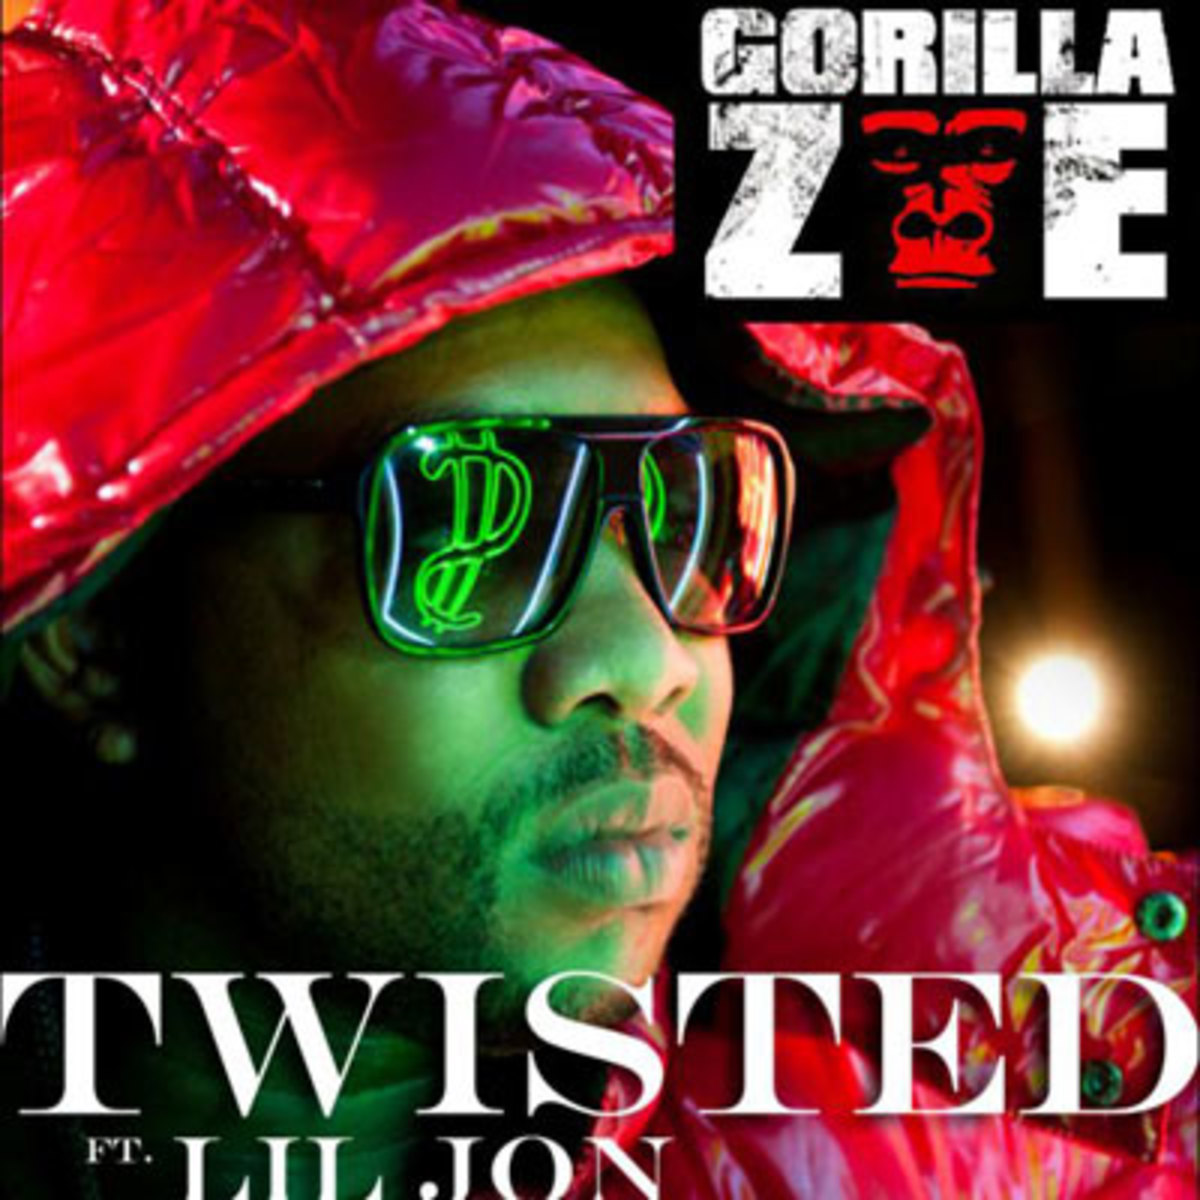 gorillazoe-twisted.jpg